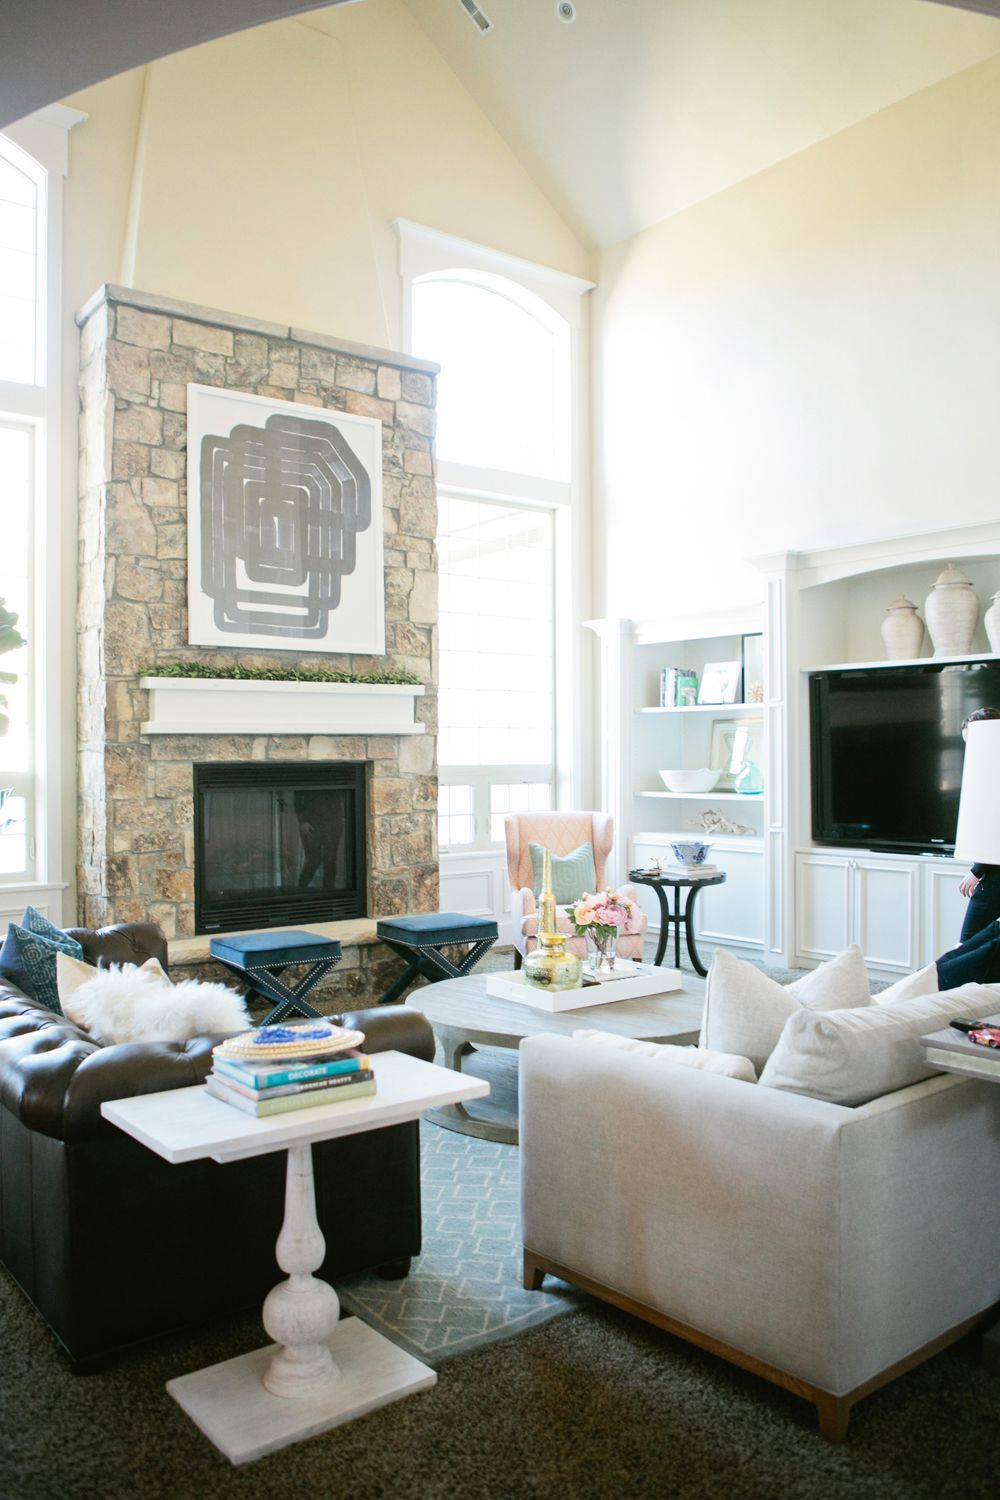 Large stone fireplace in living room design | House of Jade | LIVING ...